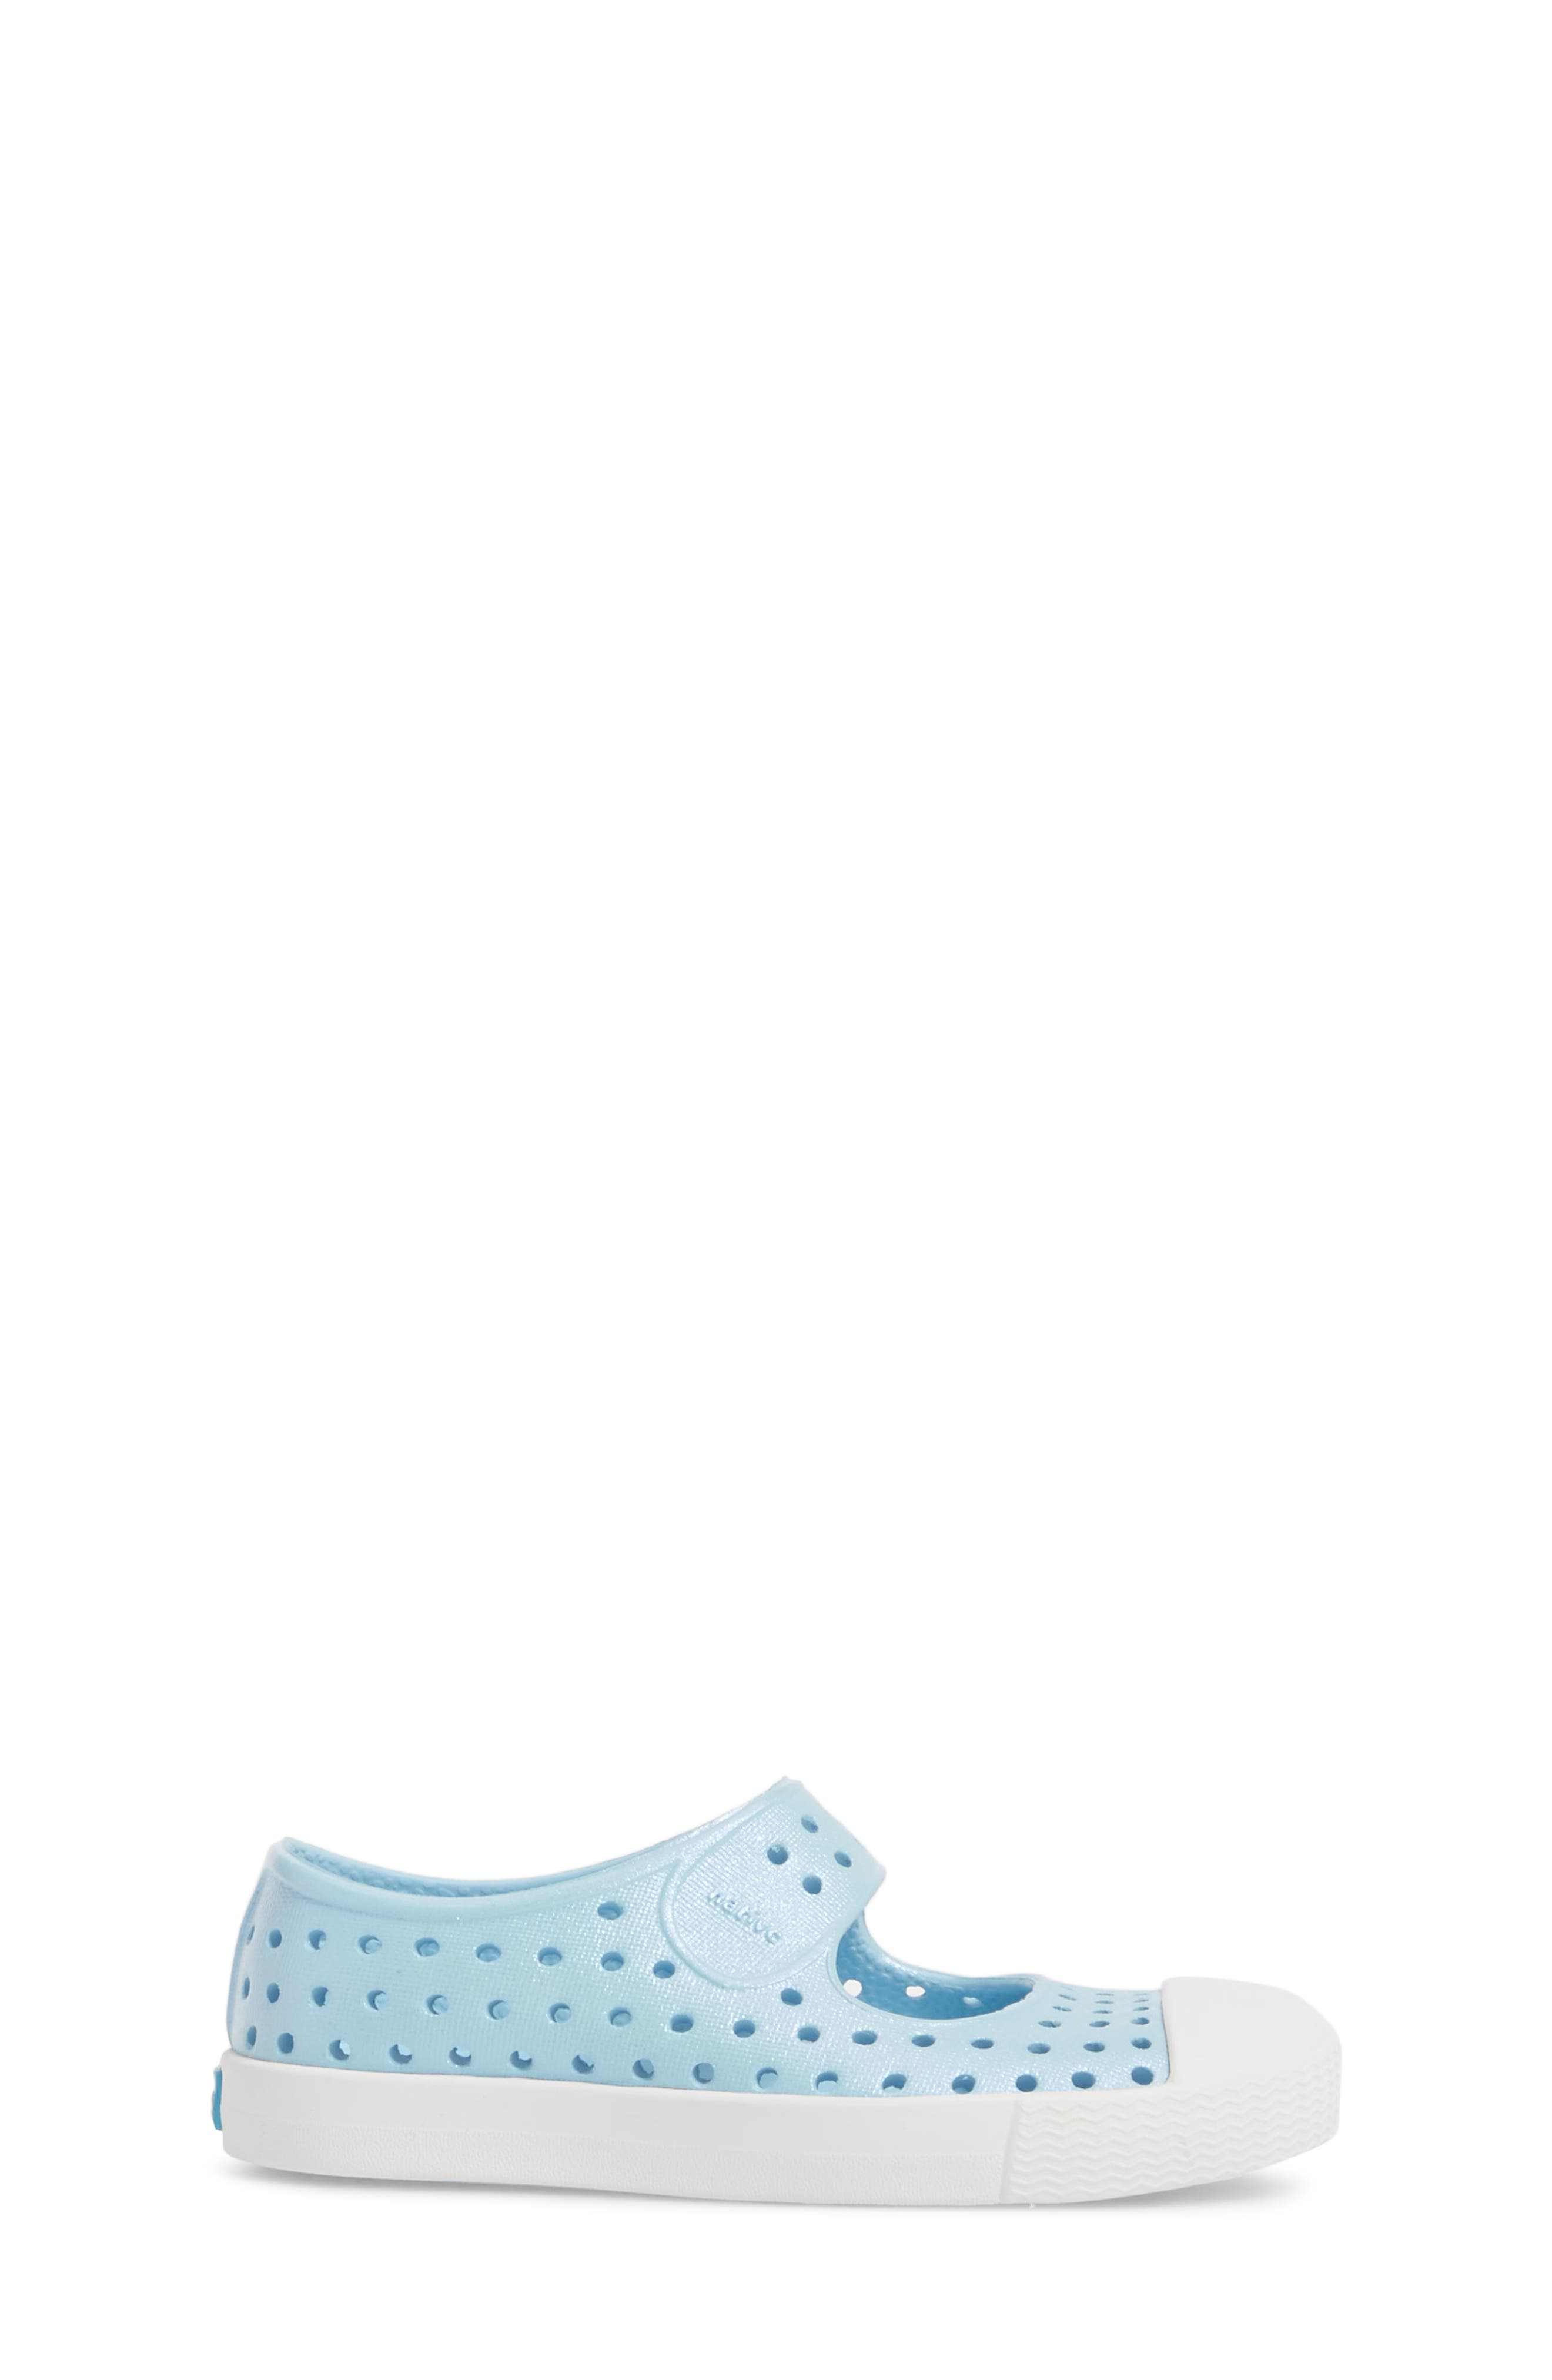 Juniper Perforated Mary Jane,                             Alternate thumbnail 3, color,                             Sky Blue/ White/ Galaxy